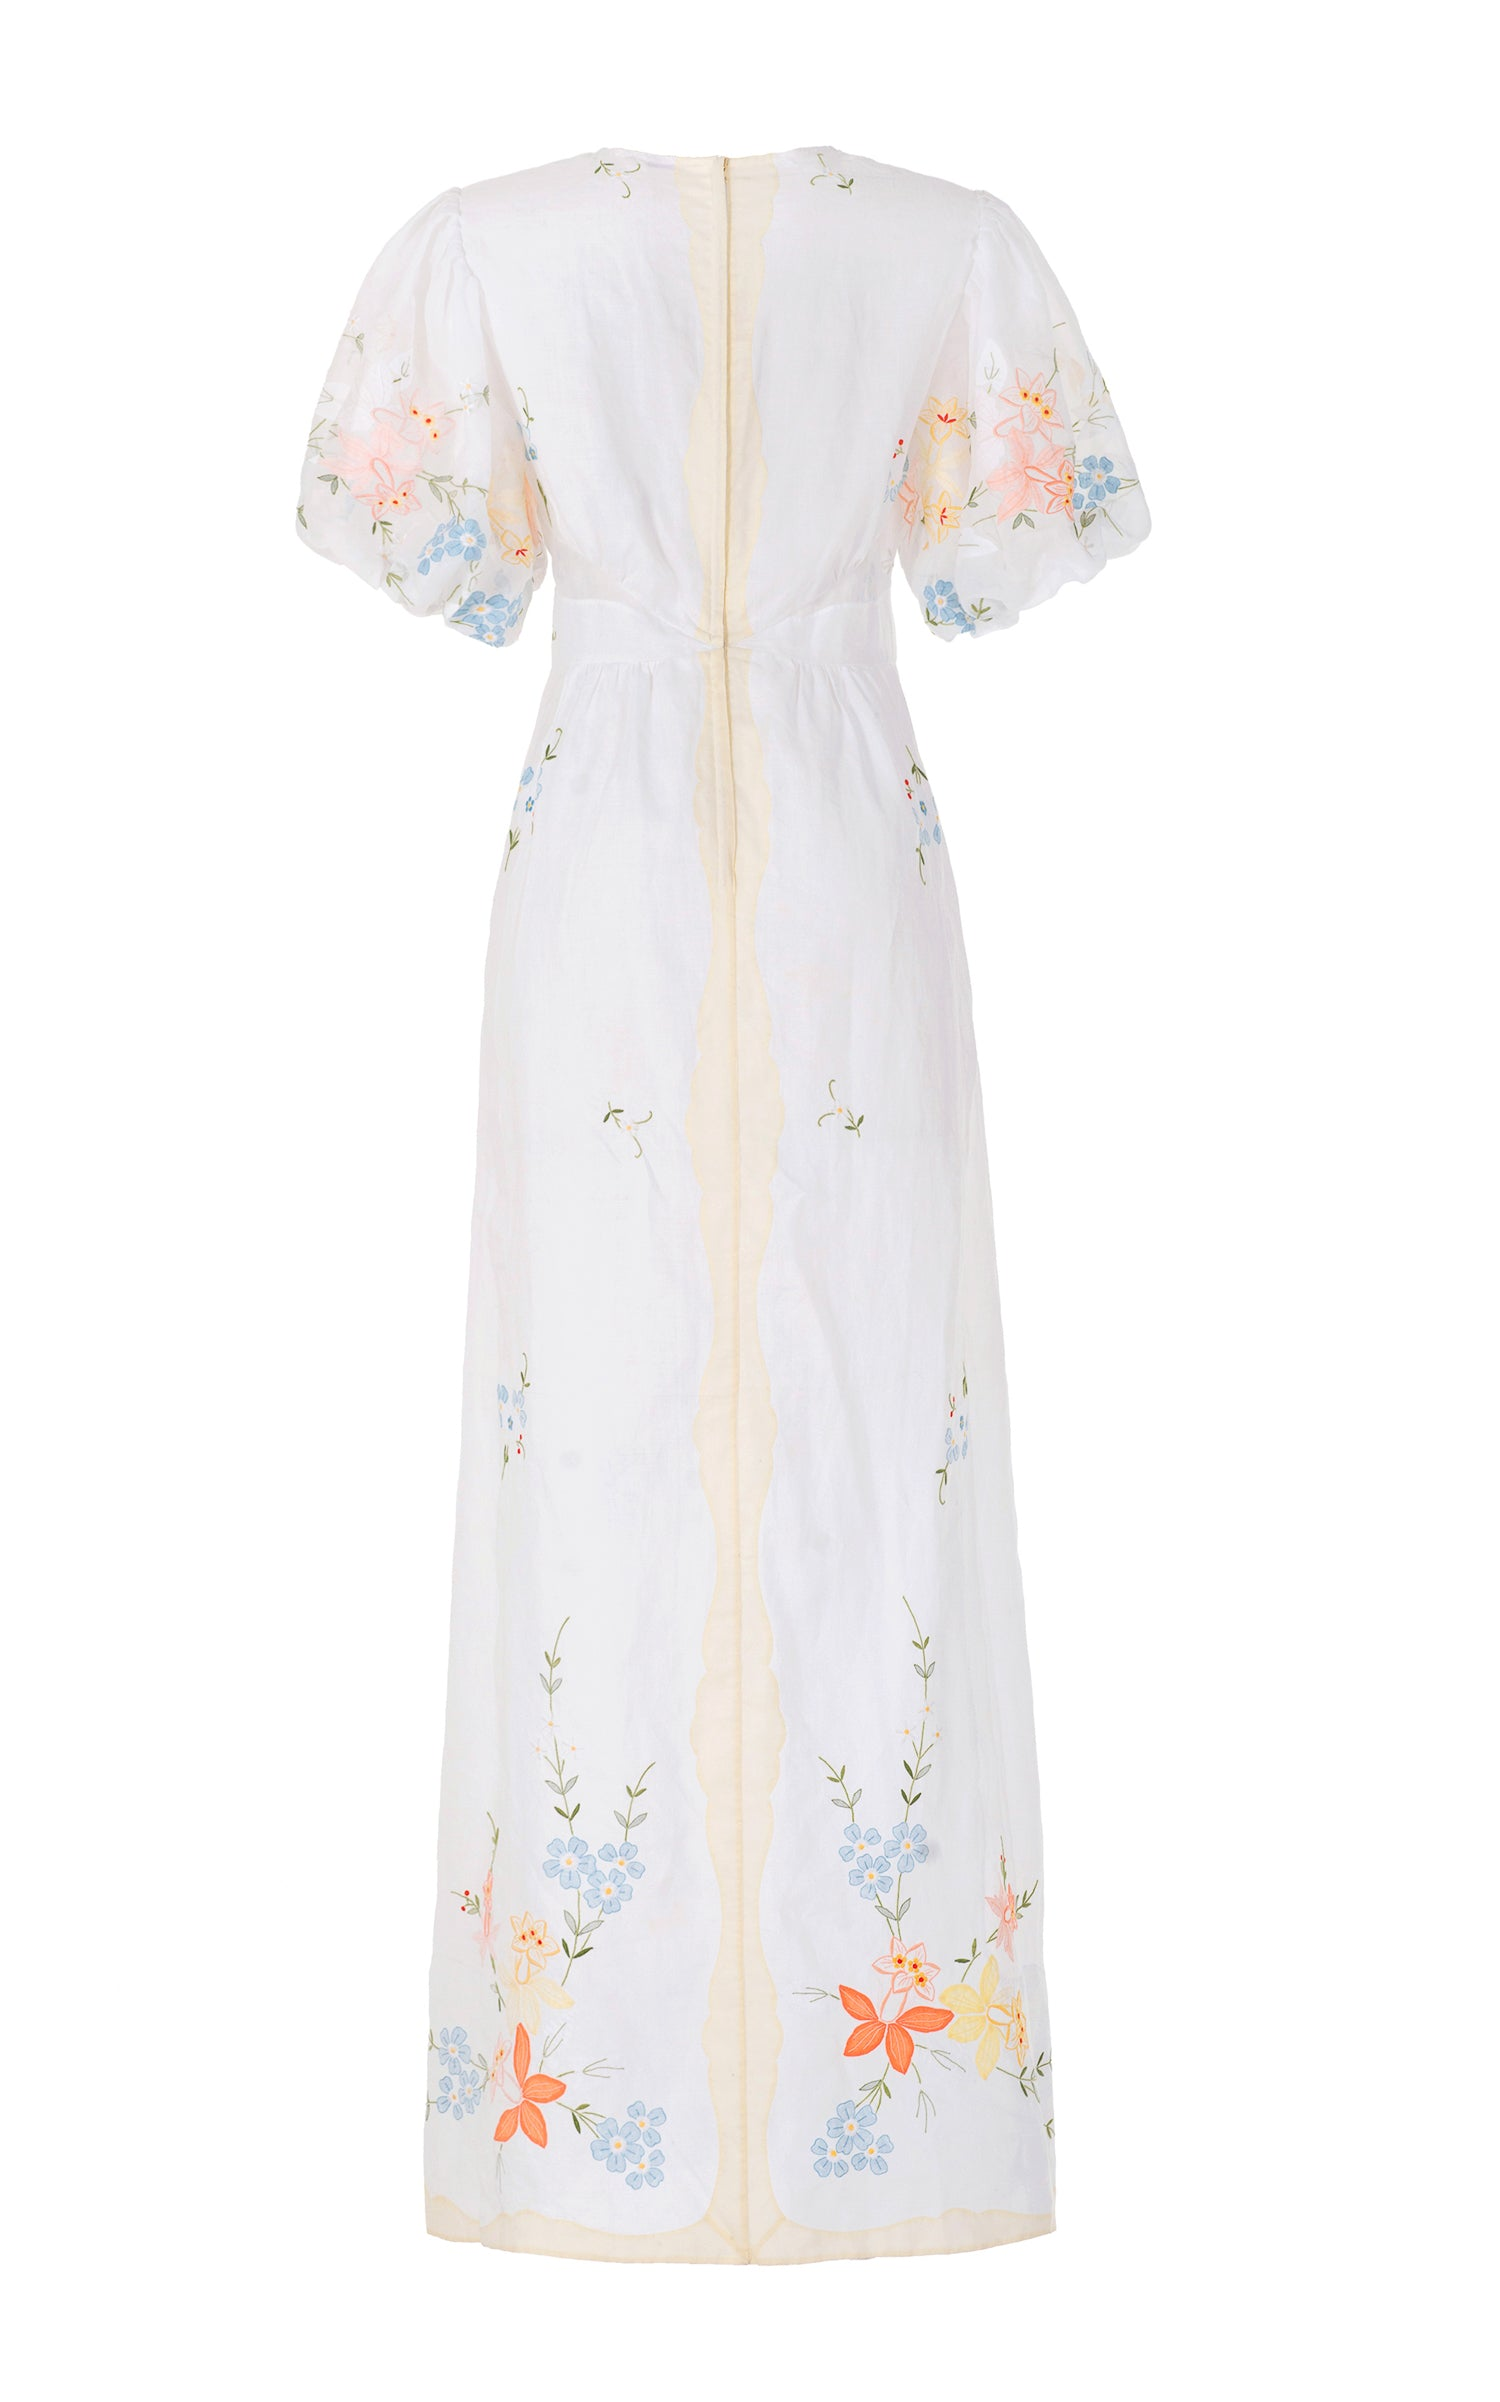 ancestor spirits dress in floral silk organza